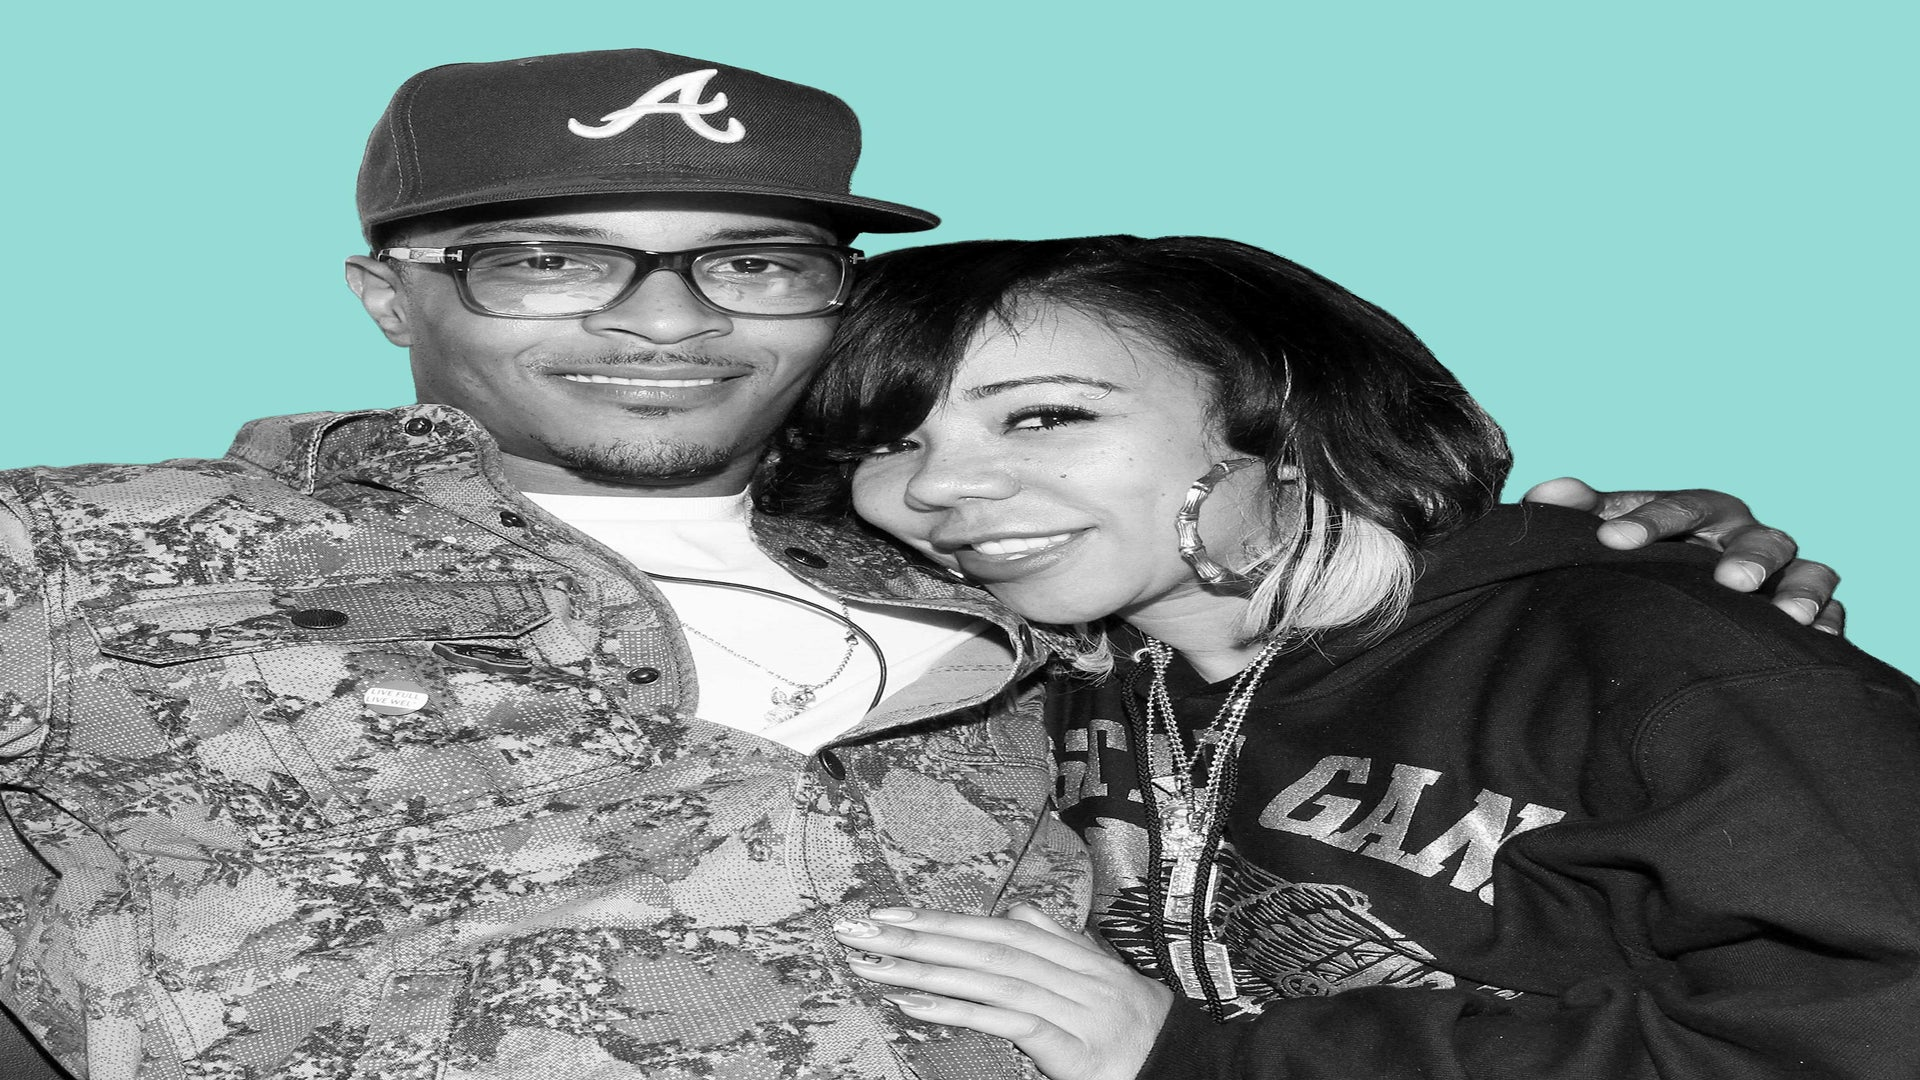 Tiny Harris On Her Marriage To T.I.: 'We're Just Taking It Day By Day'